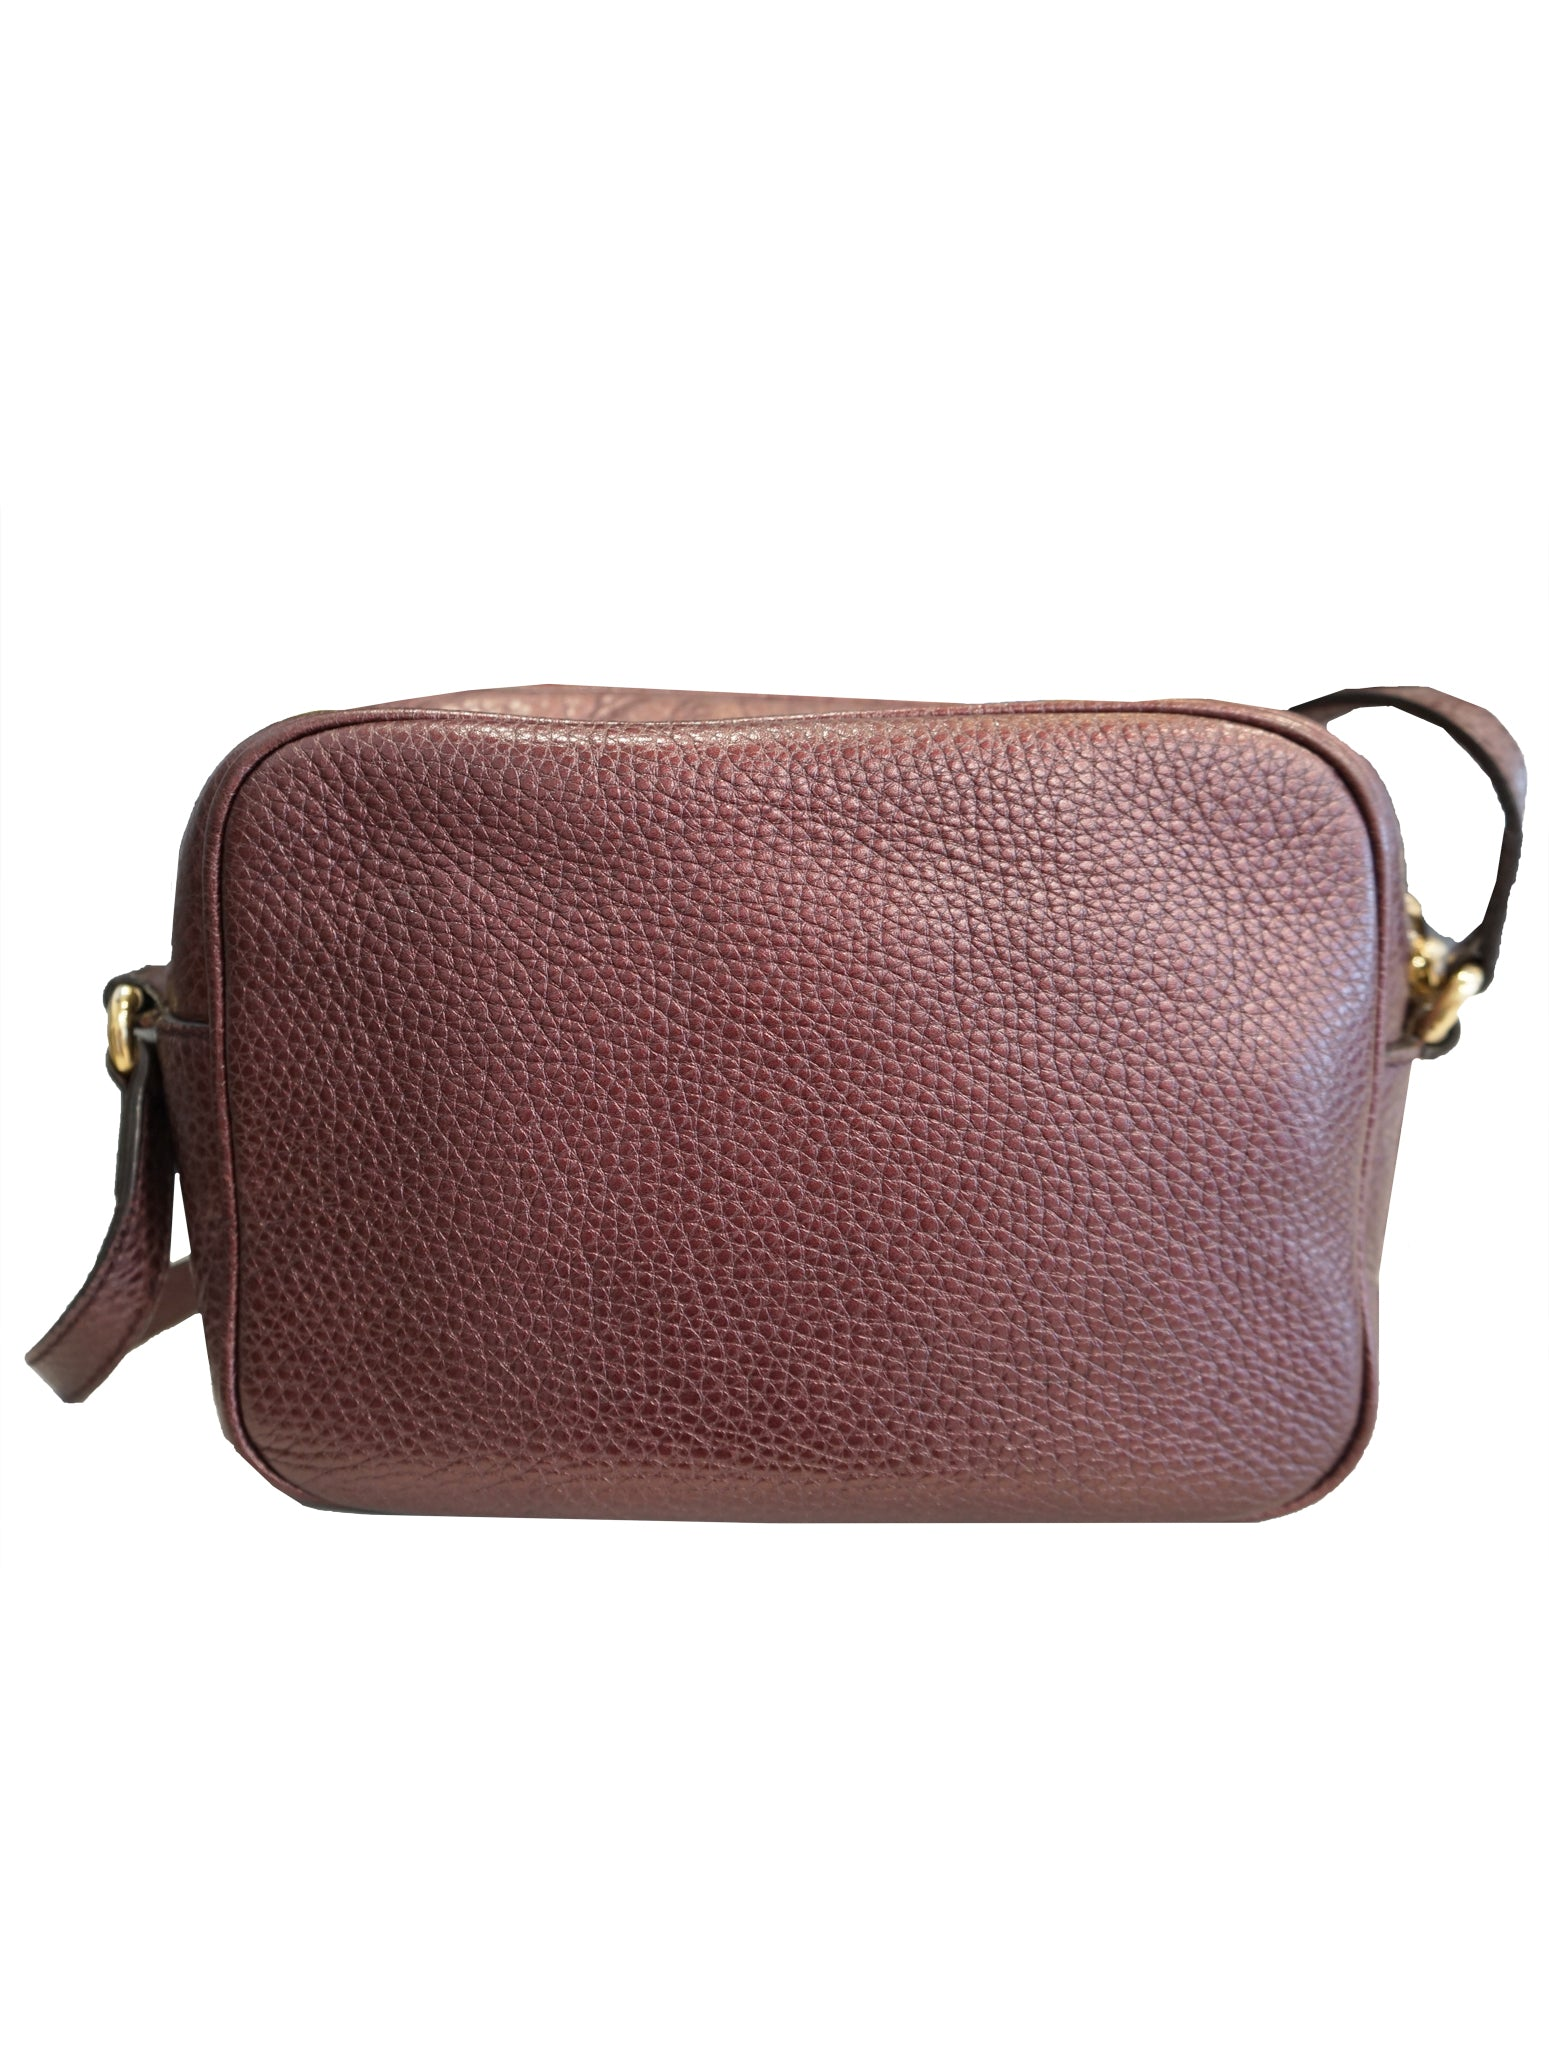 SOHO SMALL LEATHER DISCO BAG